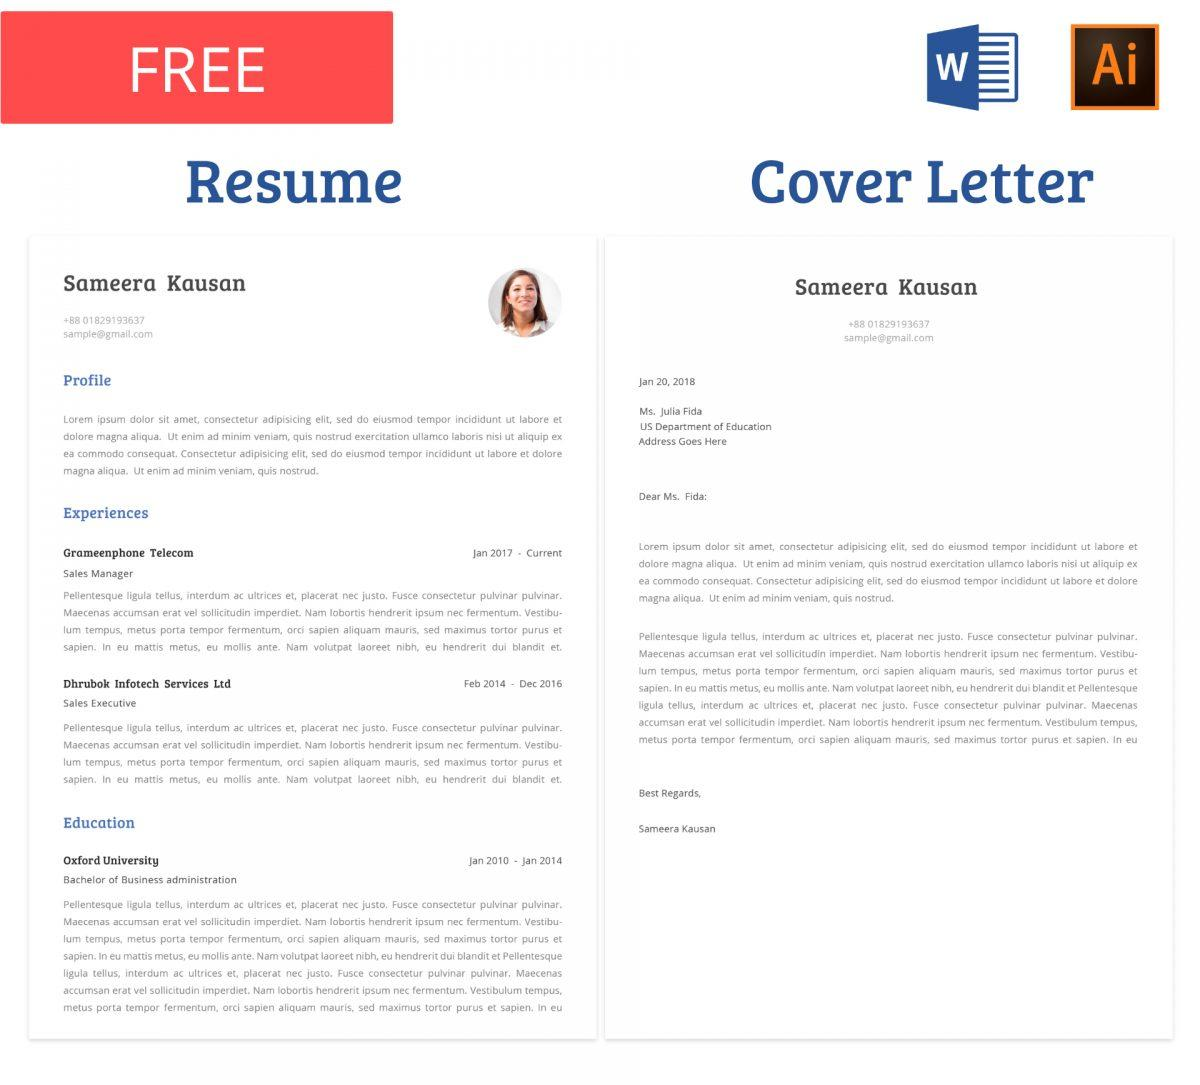 free_resume_template_with_cover_letter